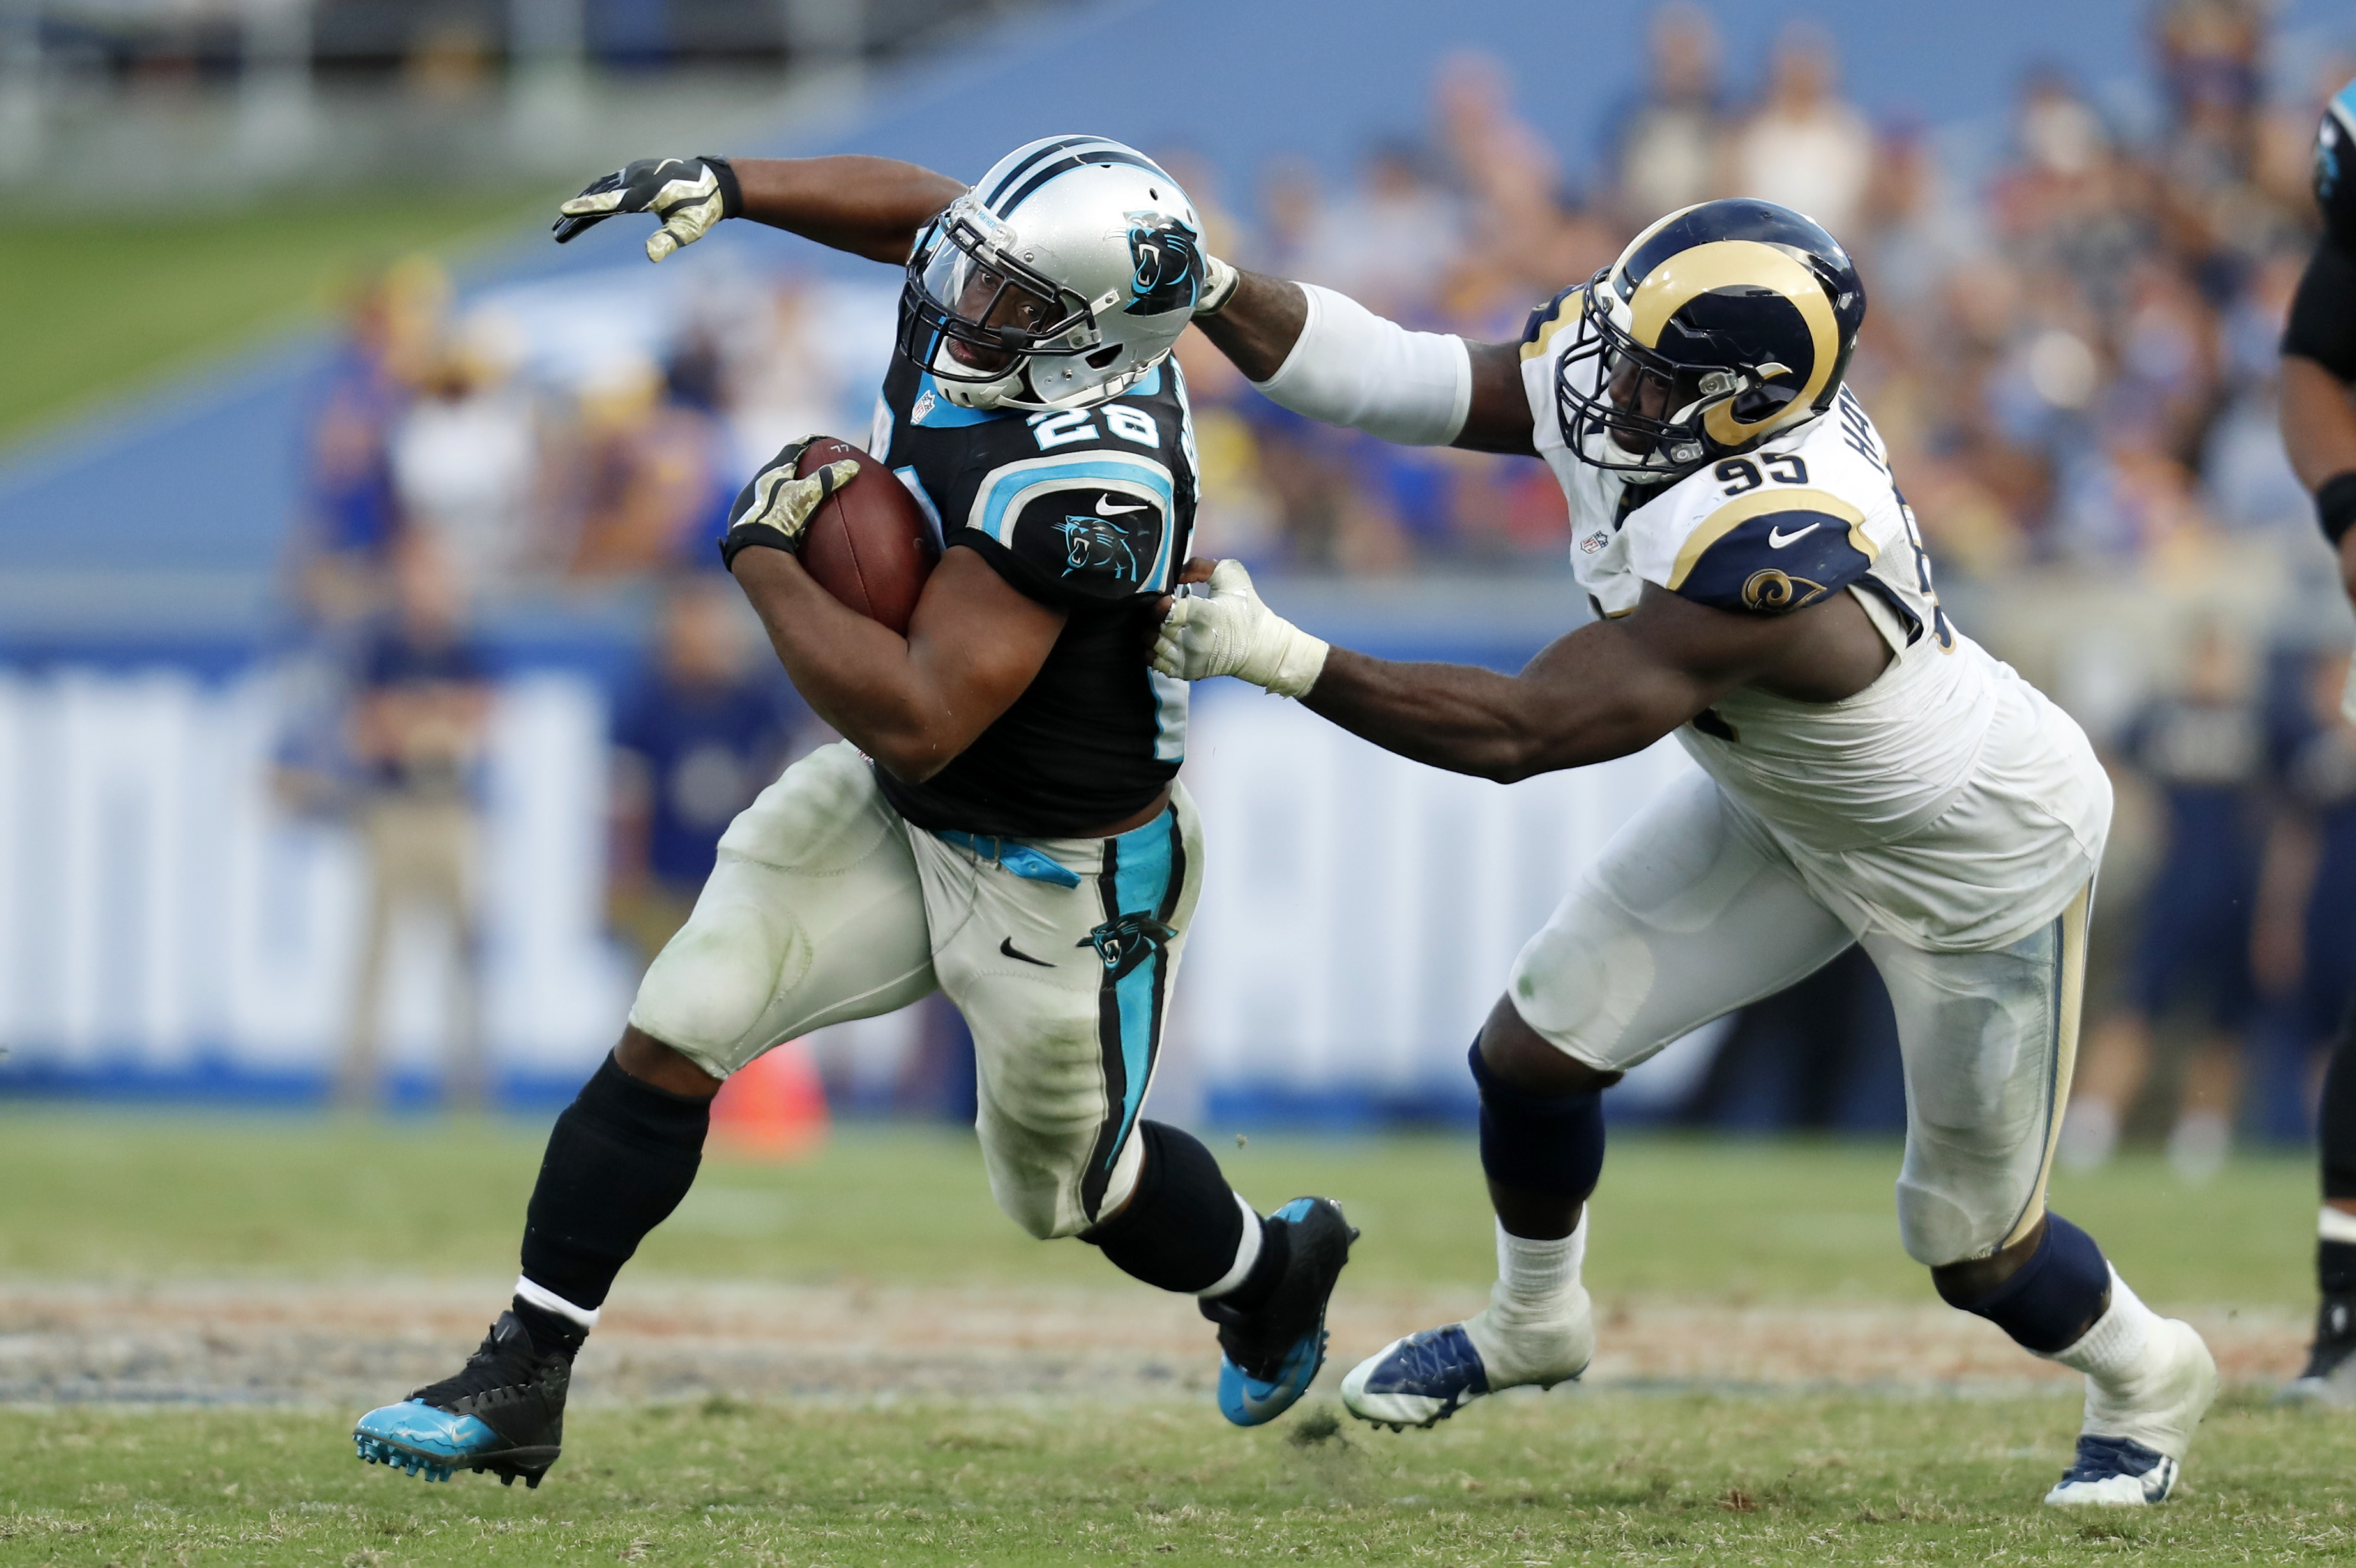 Carolina Panthers running back Jonathan Stewart, left, is grabbed by Los Angeles Rams defensive end William Hayes as he runs the ball during the second half of an NFL football game, Sunday, Nov. 6, 2016, in Los Angeles. (AP Photo/Ryan Kang)